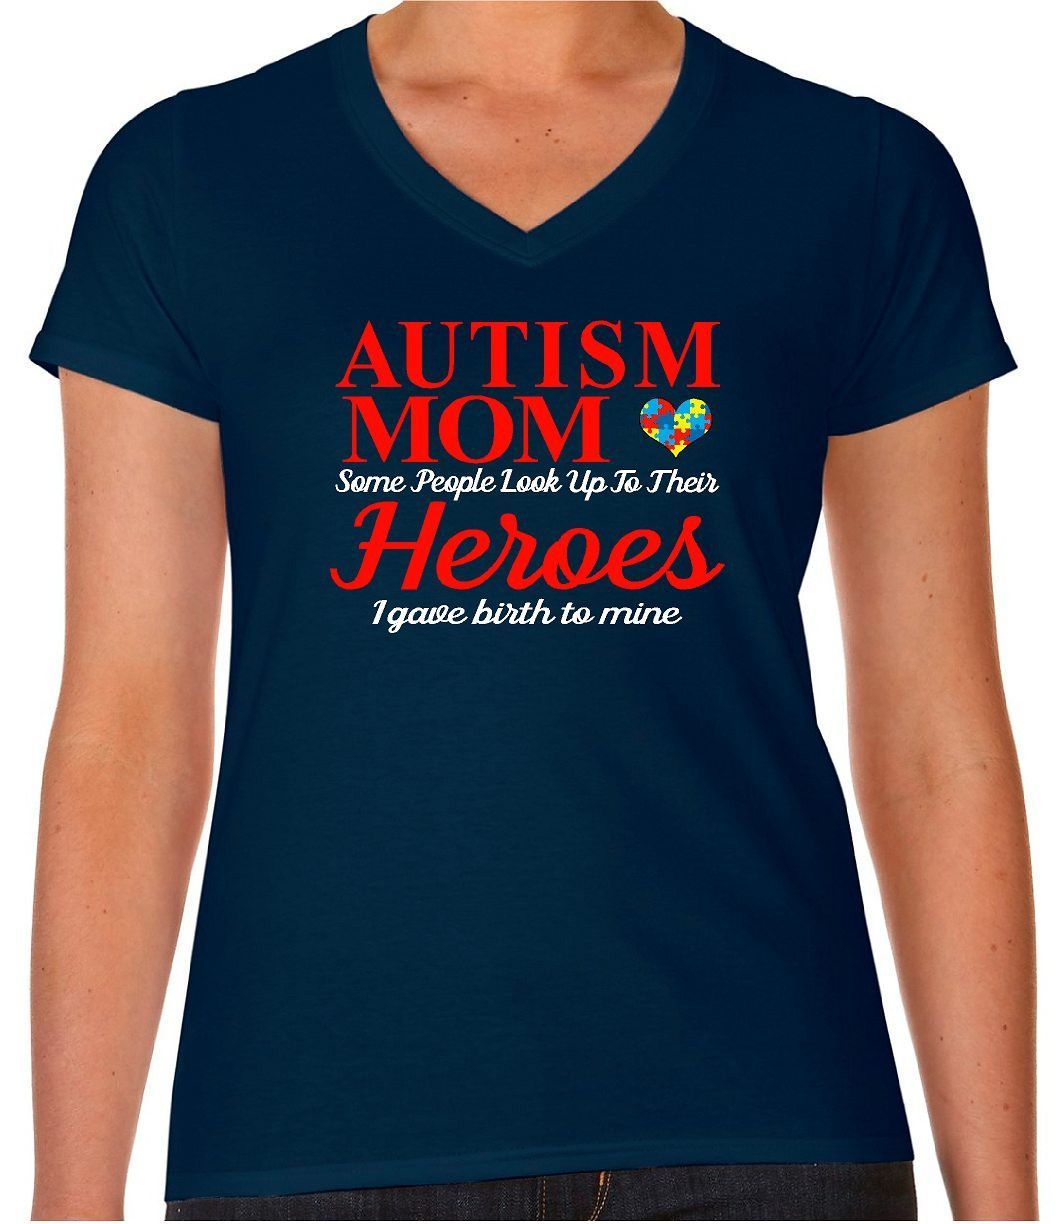 bf9dee28a Autism awareness t-shirts are a great way to show love and support  acceptance. Autism Shirt, Autism Mom Shirt, Autism Awareness, Autism  Awareness Shirt, ...